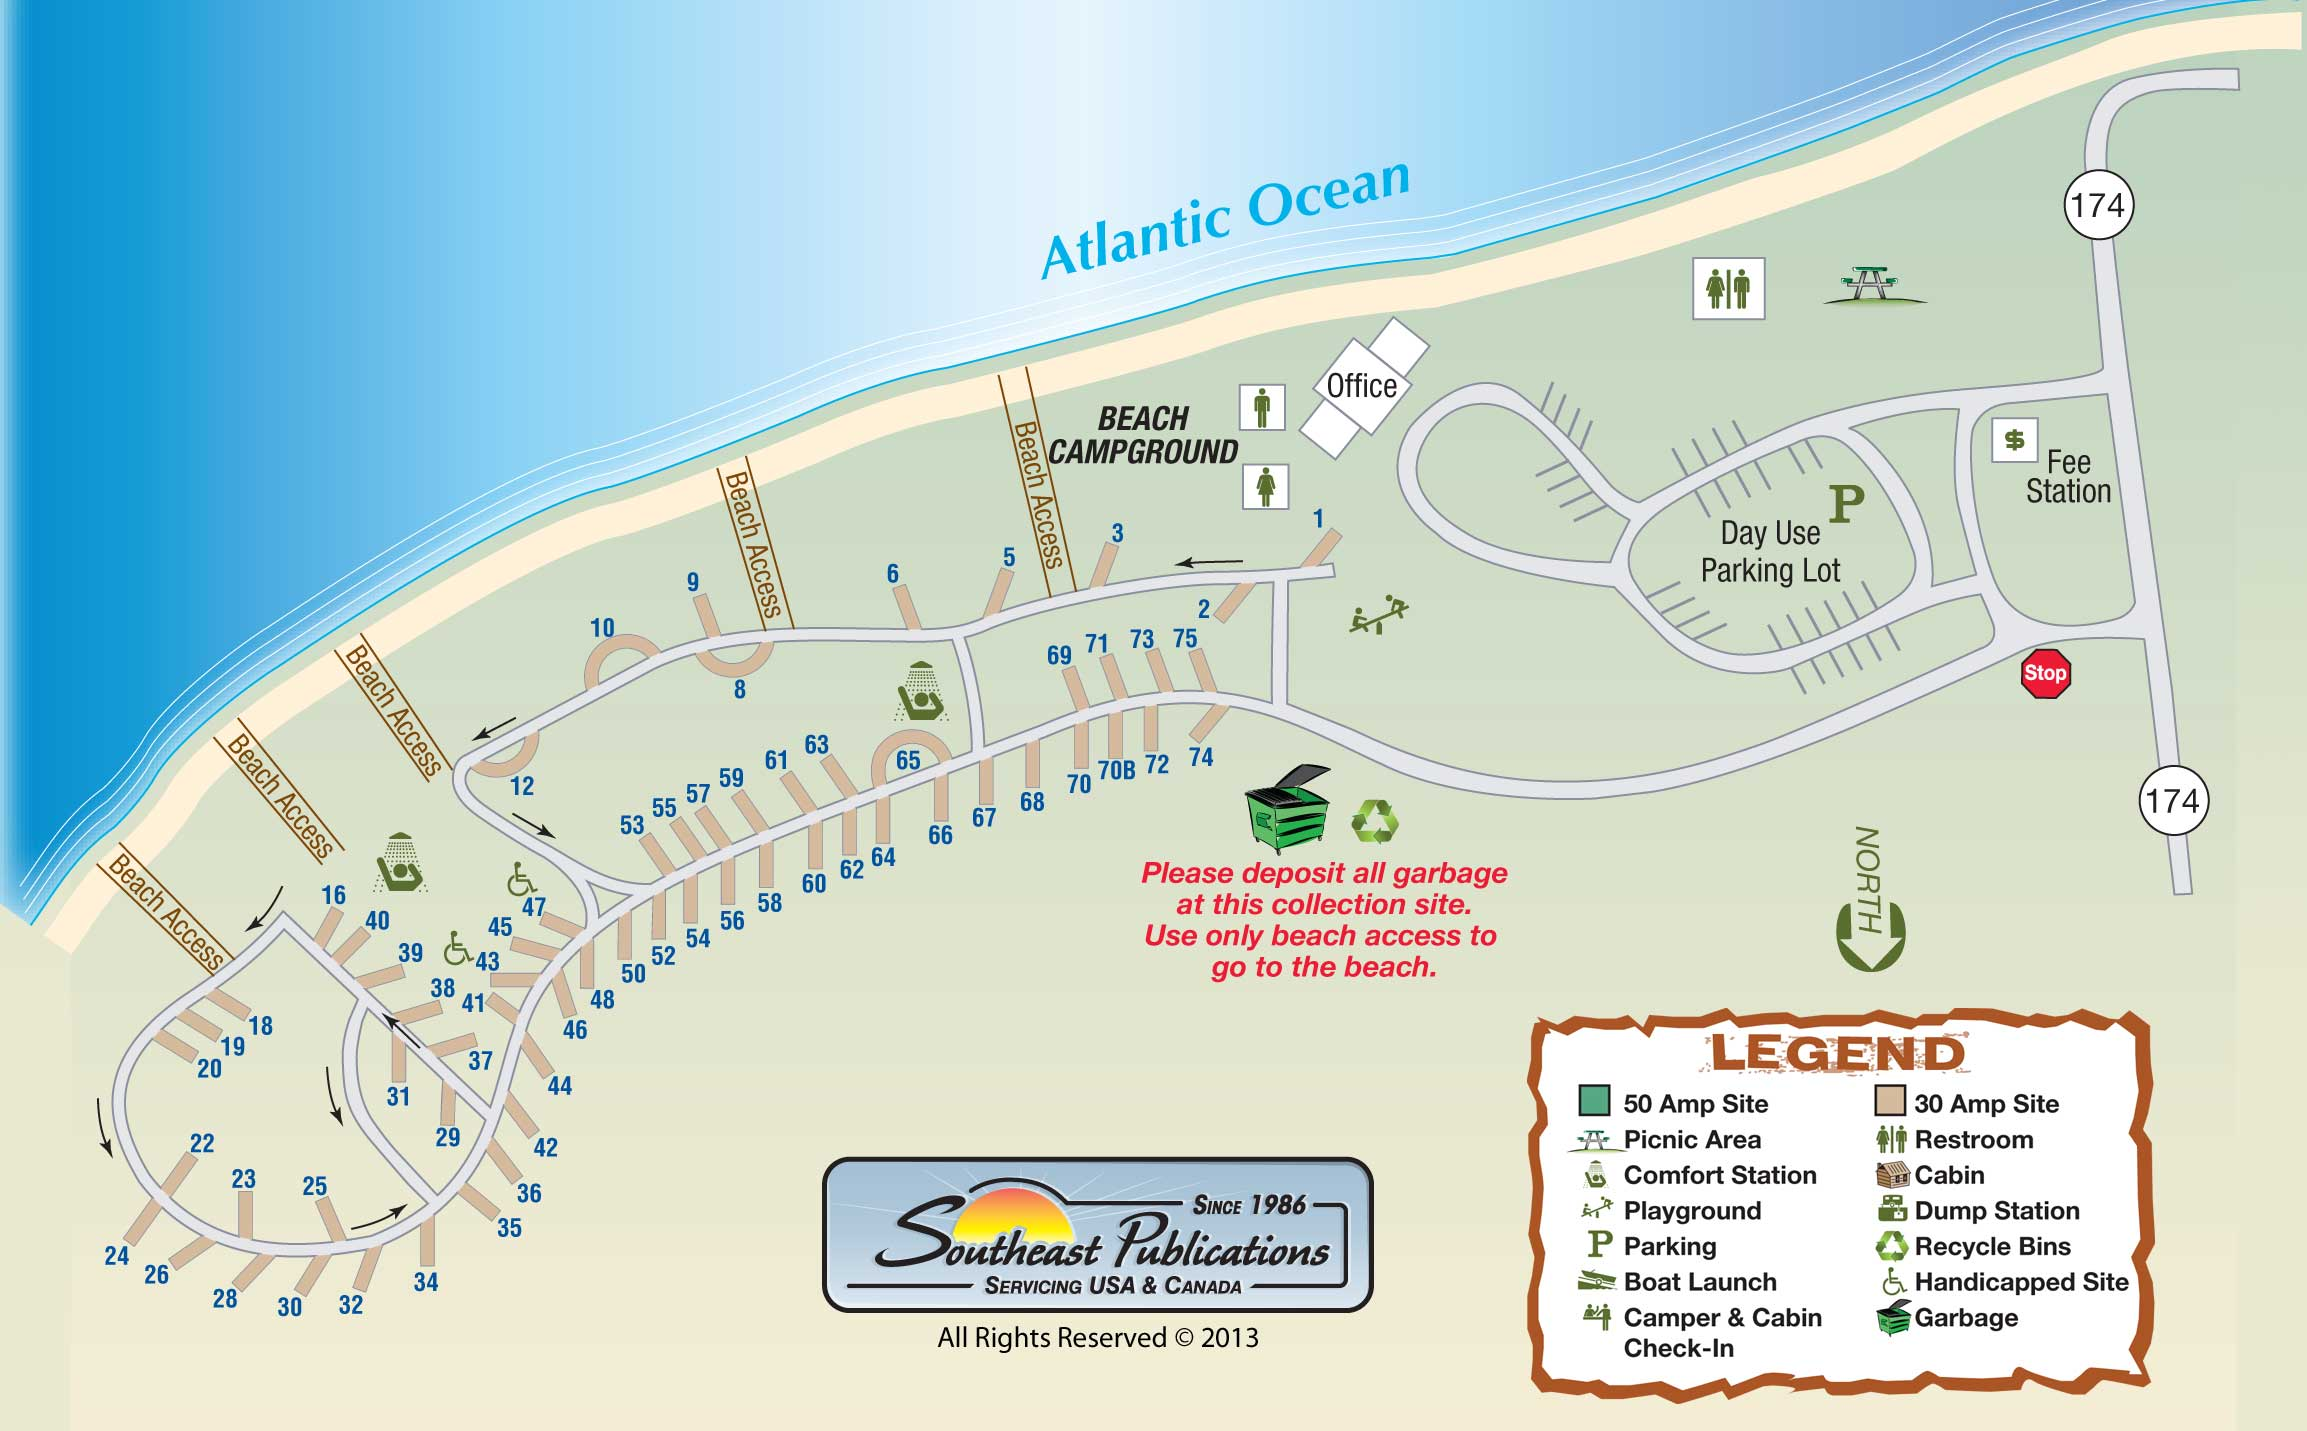 edisto island gay dating site Edisto island, south carolina just a short hours drive south of historic charleston, lays the picturesque sea island community of edisto island, south carolinanestled in rural colleton county, this idyllic community boasts a rich and colorful history dating back more than 500 years.